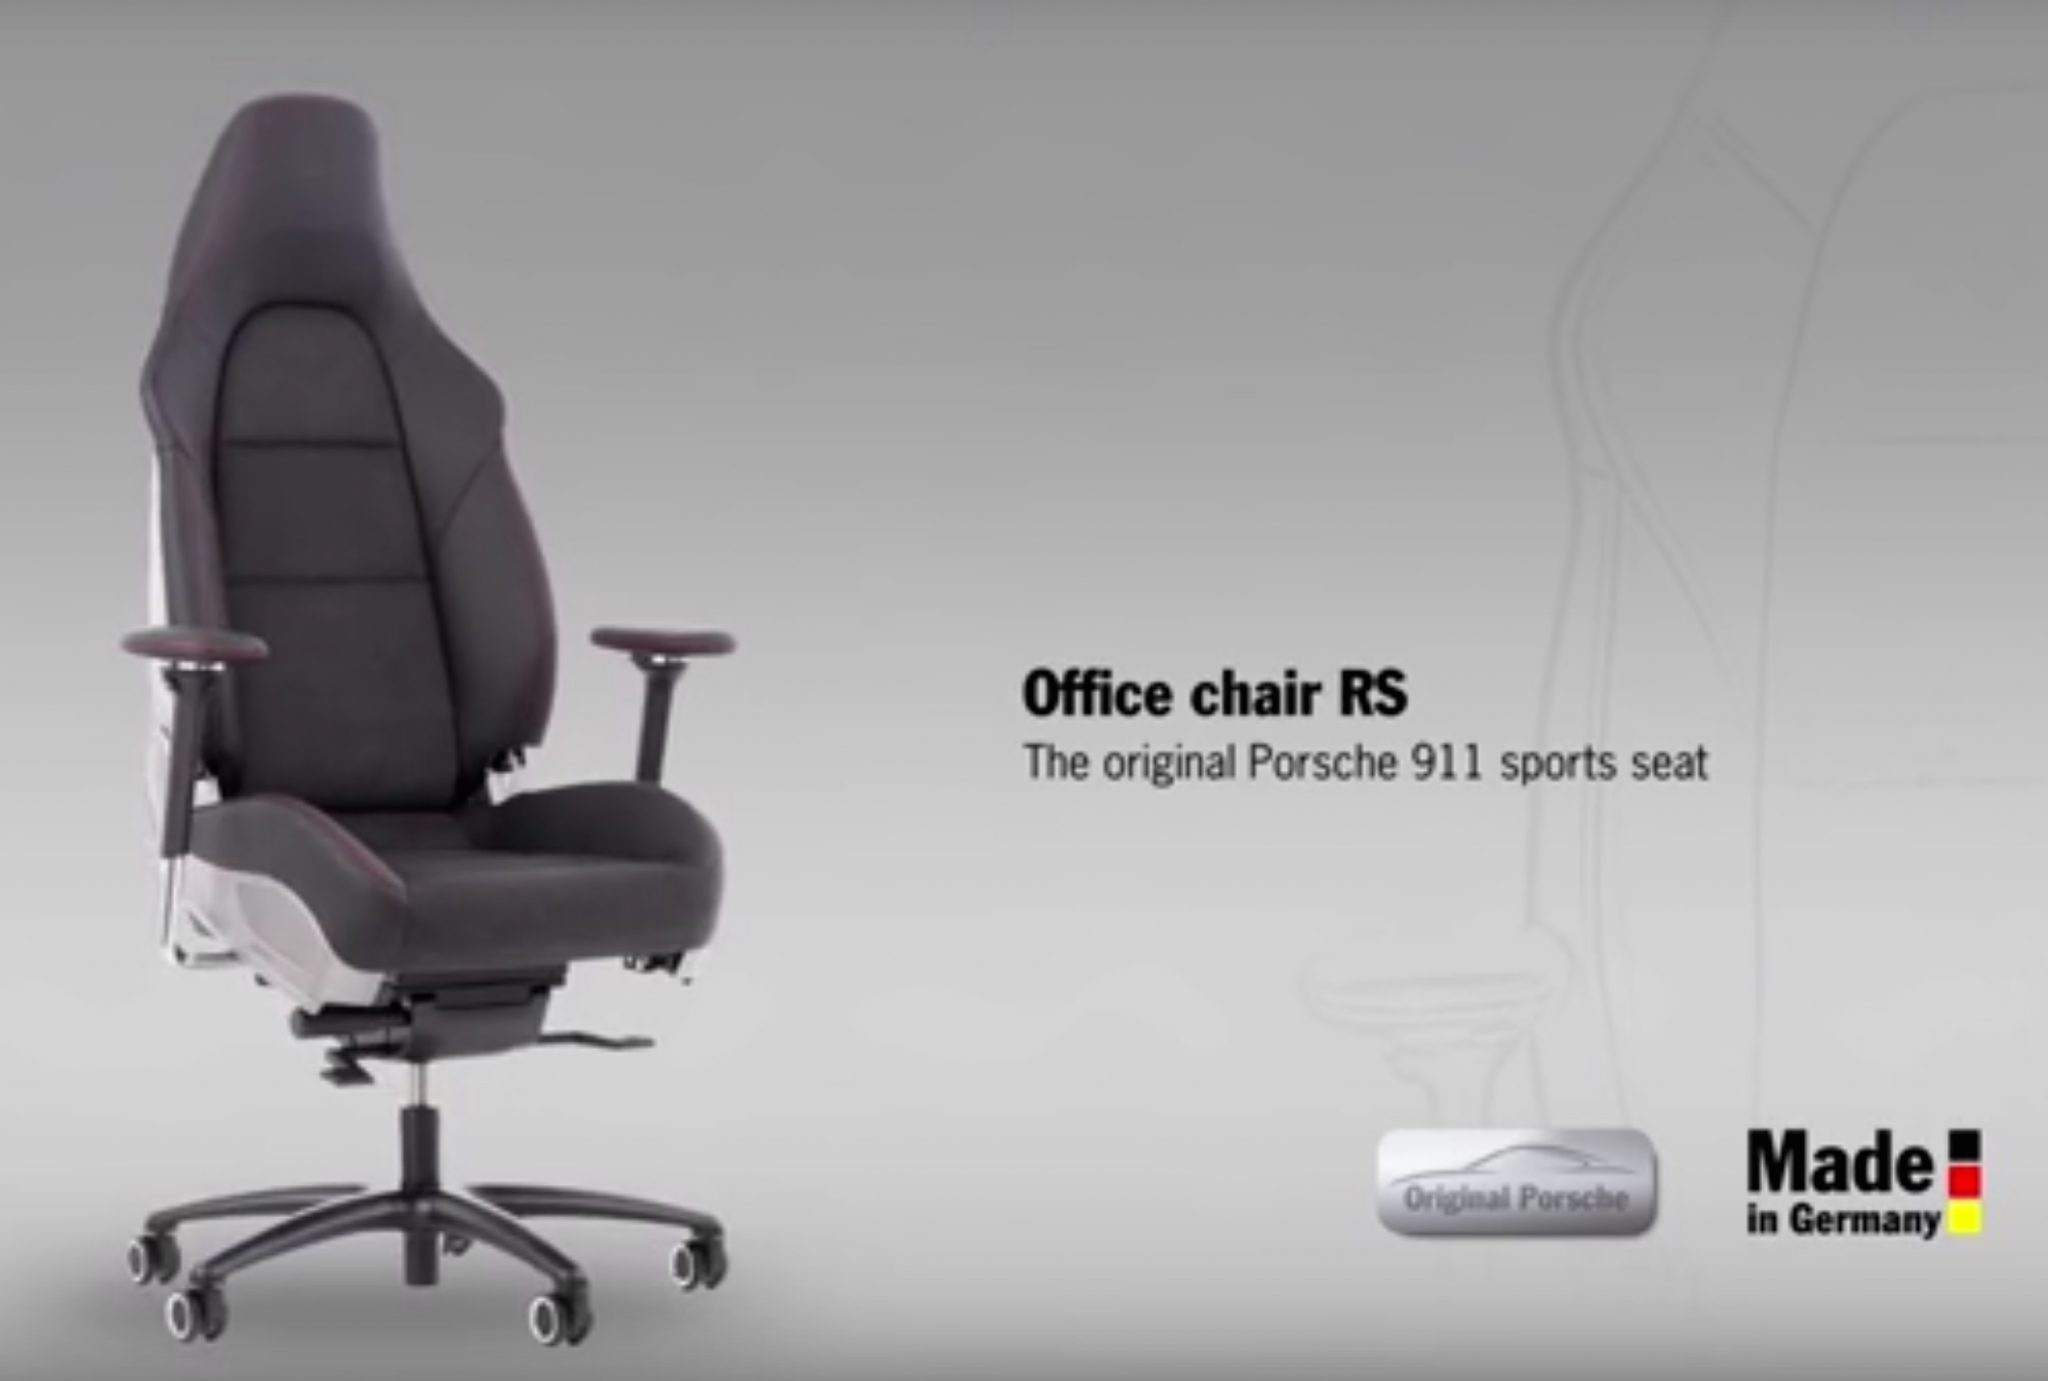 The ultimate office chair for the ultimate Porsche enthusiast